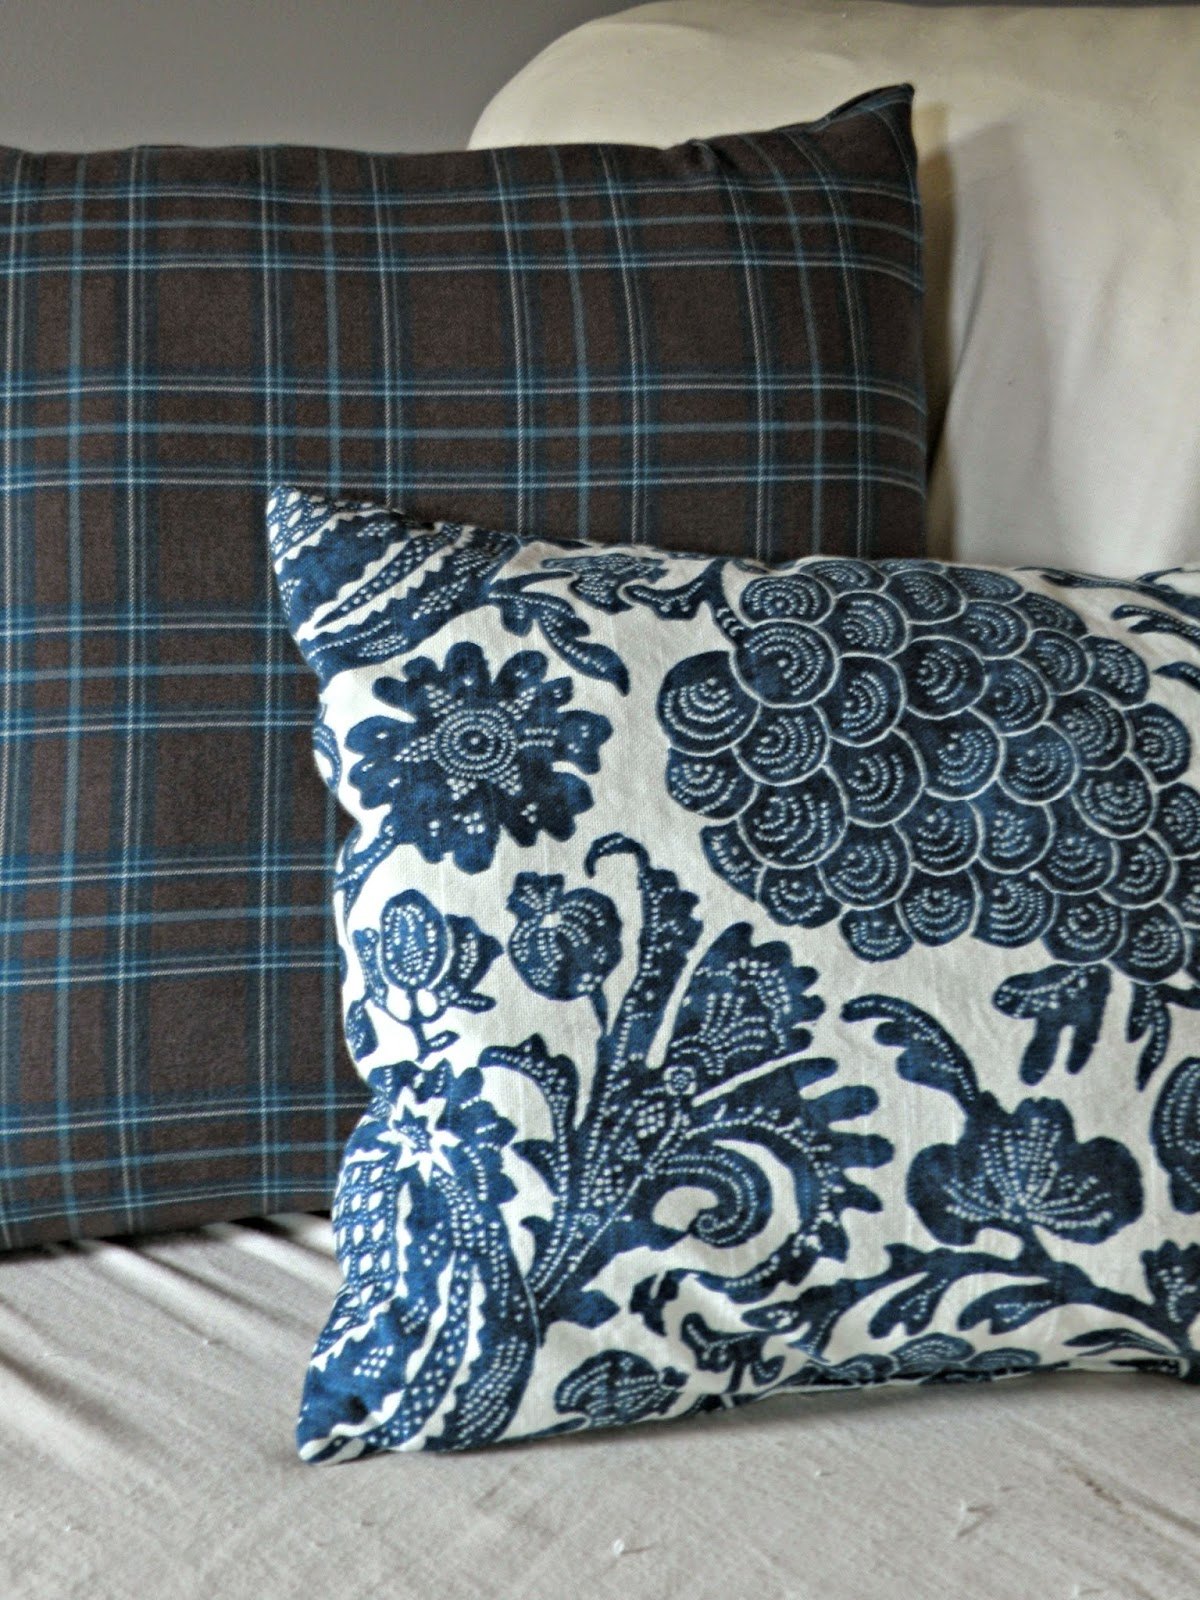 Navy blue mixed pattern pillows - plaid and floral